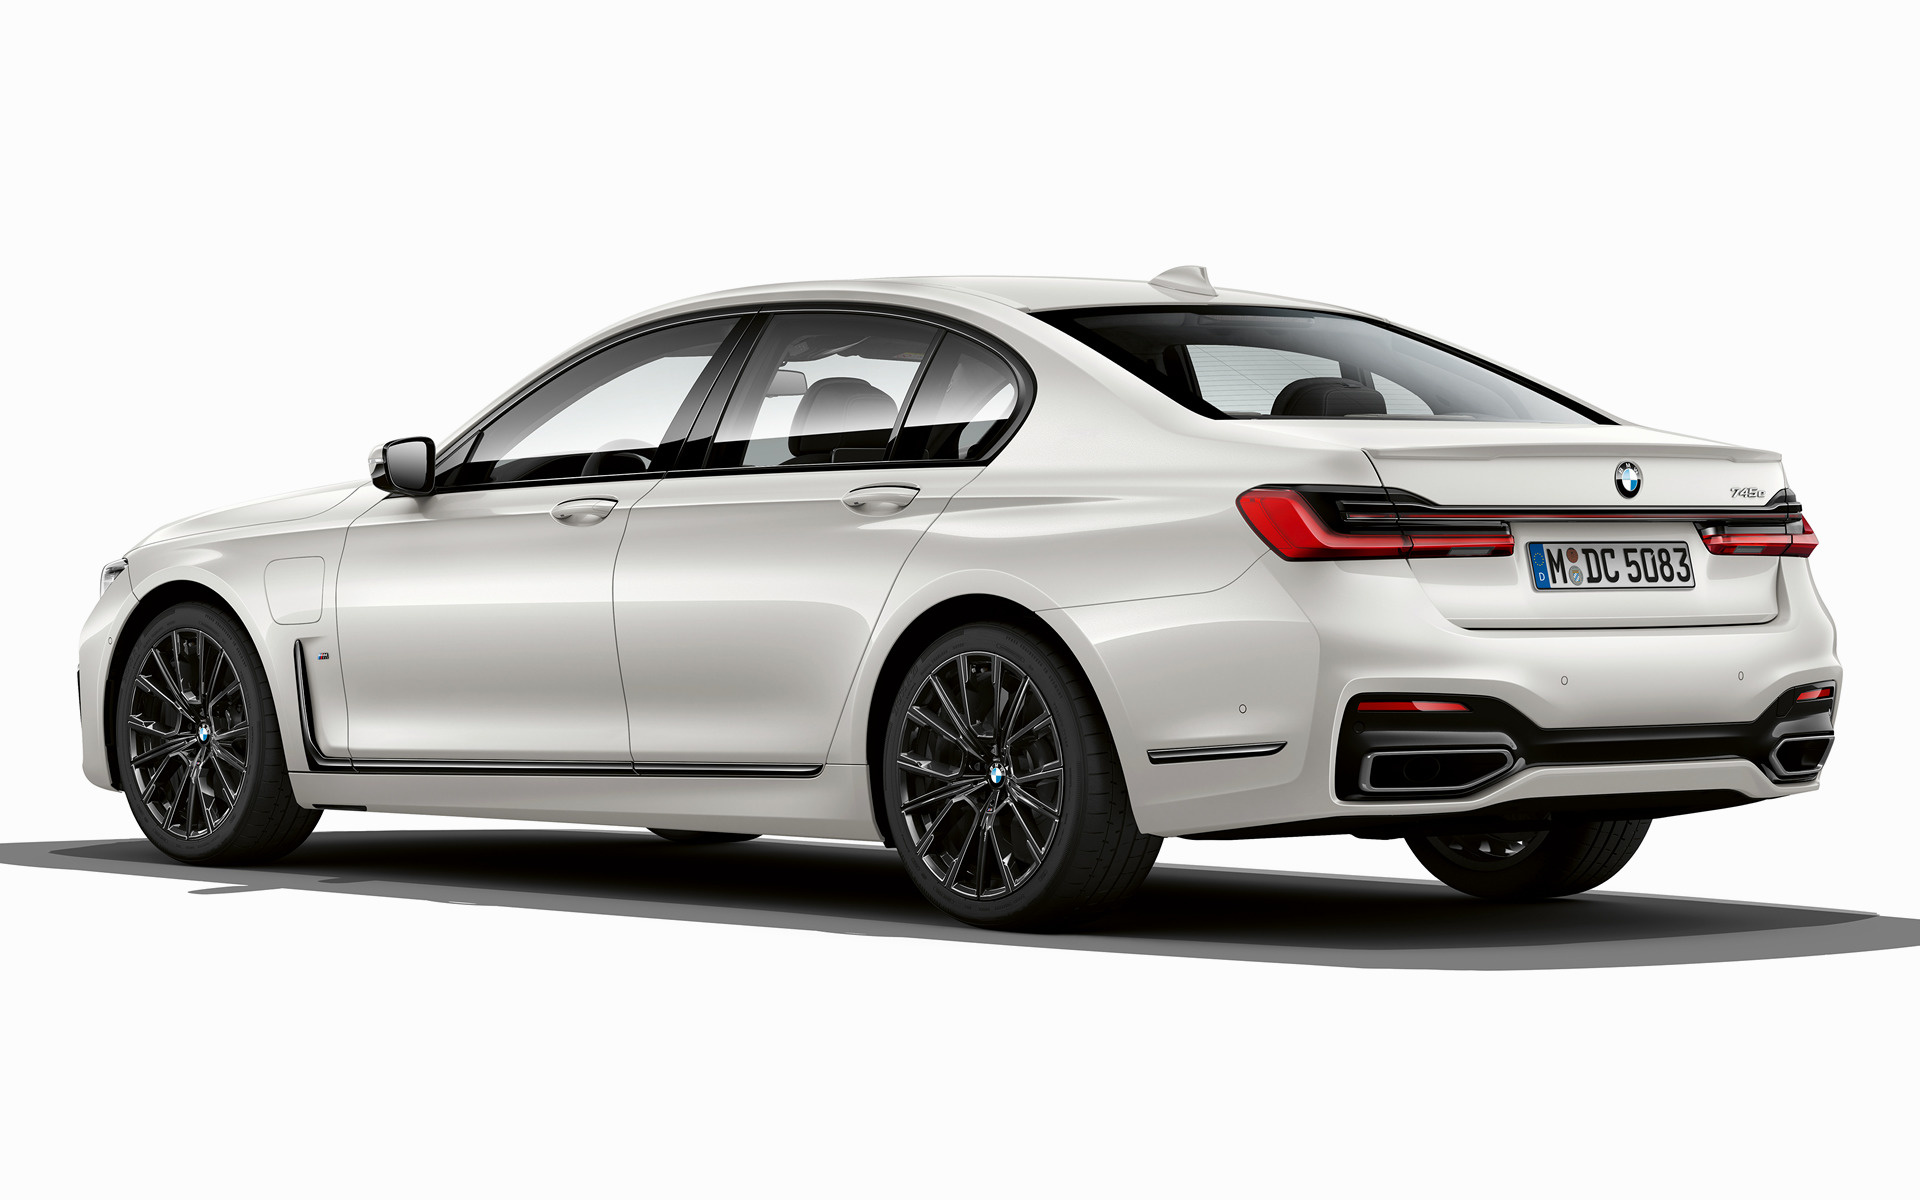 2019 Bmw 7 Series Plug In Hybrid M Sport обои и картинки на